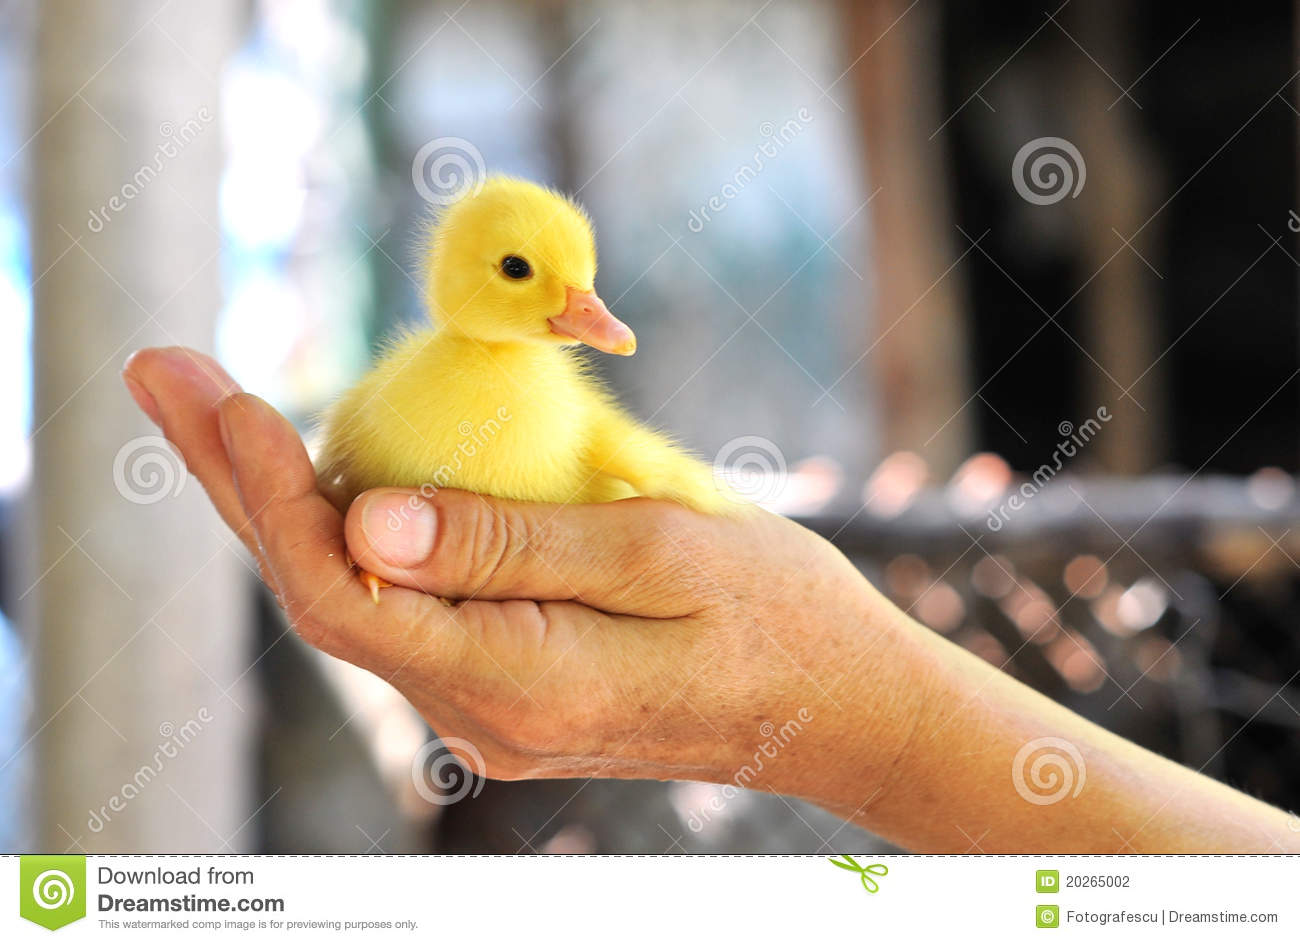 Hands holding a baby duck